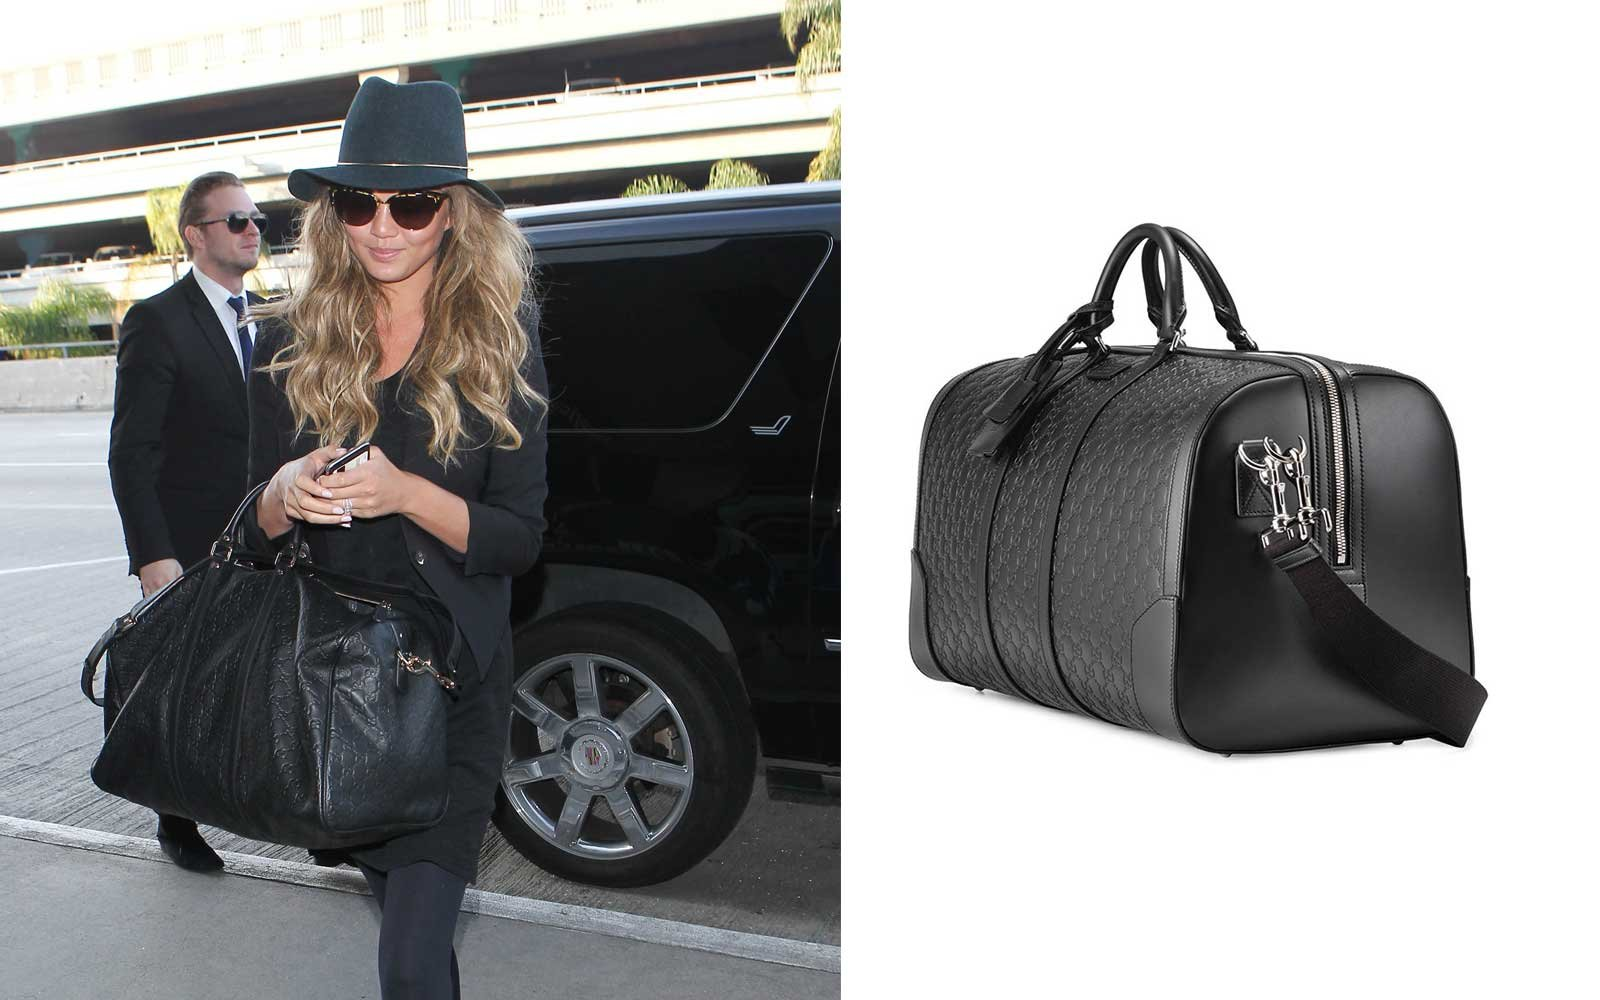 76329021b19 Celebrities' Favorite Handbags to Travel With | Travel + Leisure